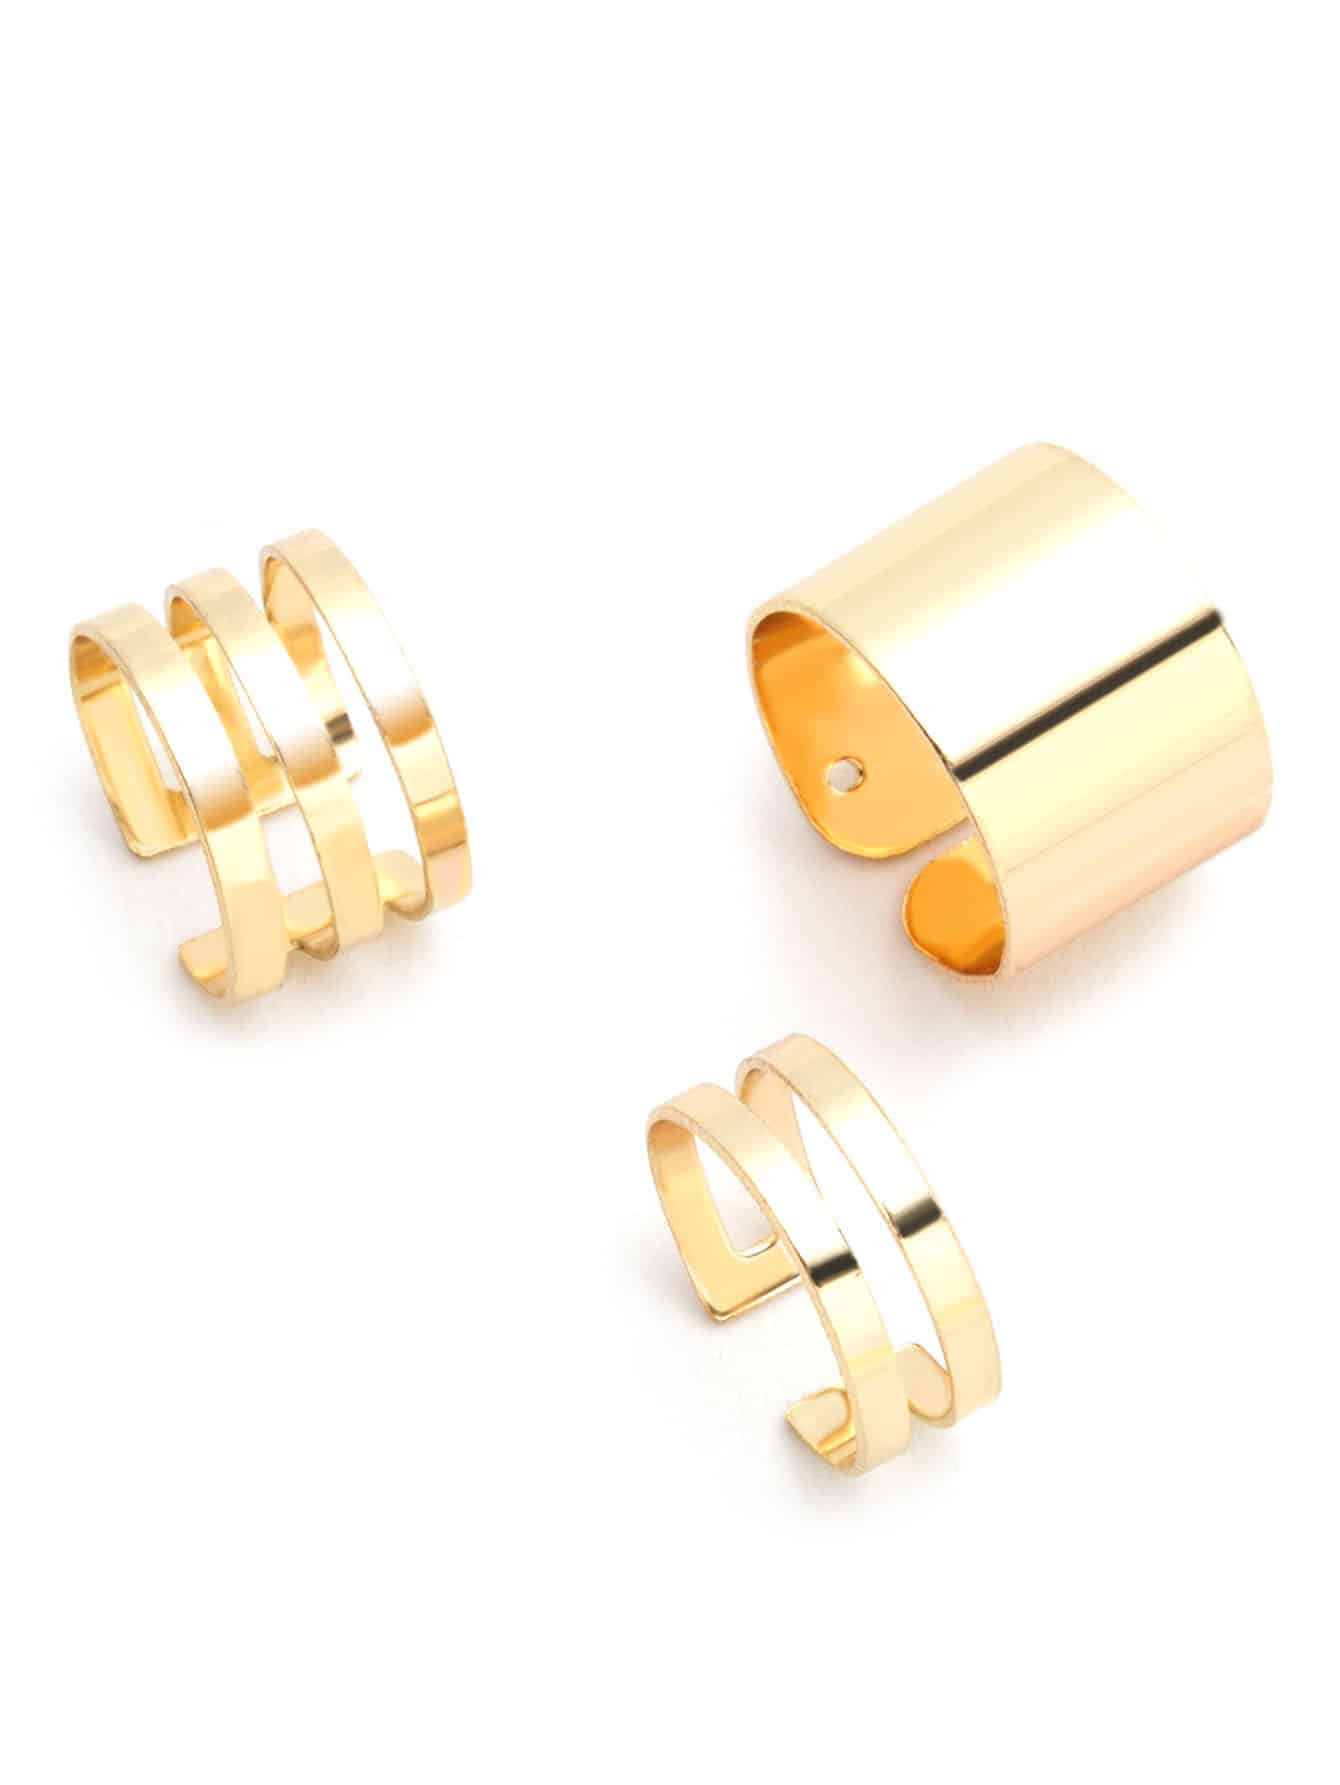 Image of 3PCS Gold Plated Hollow Out Ring Set